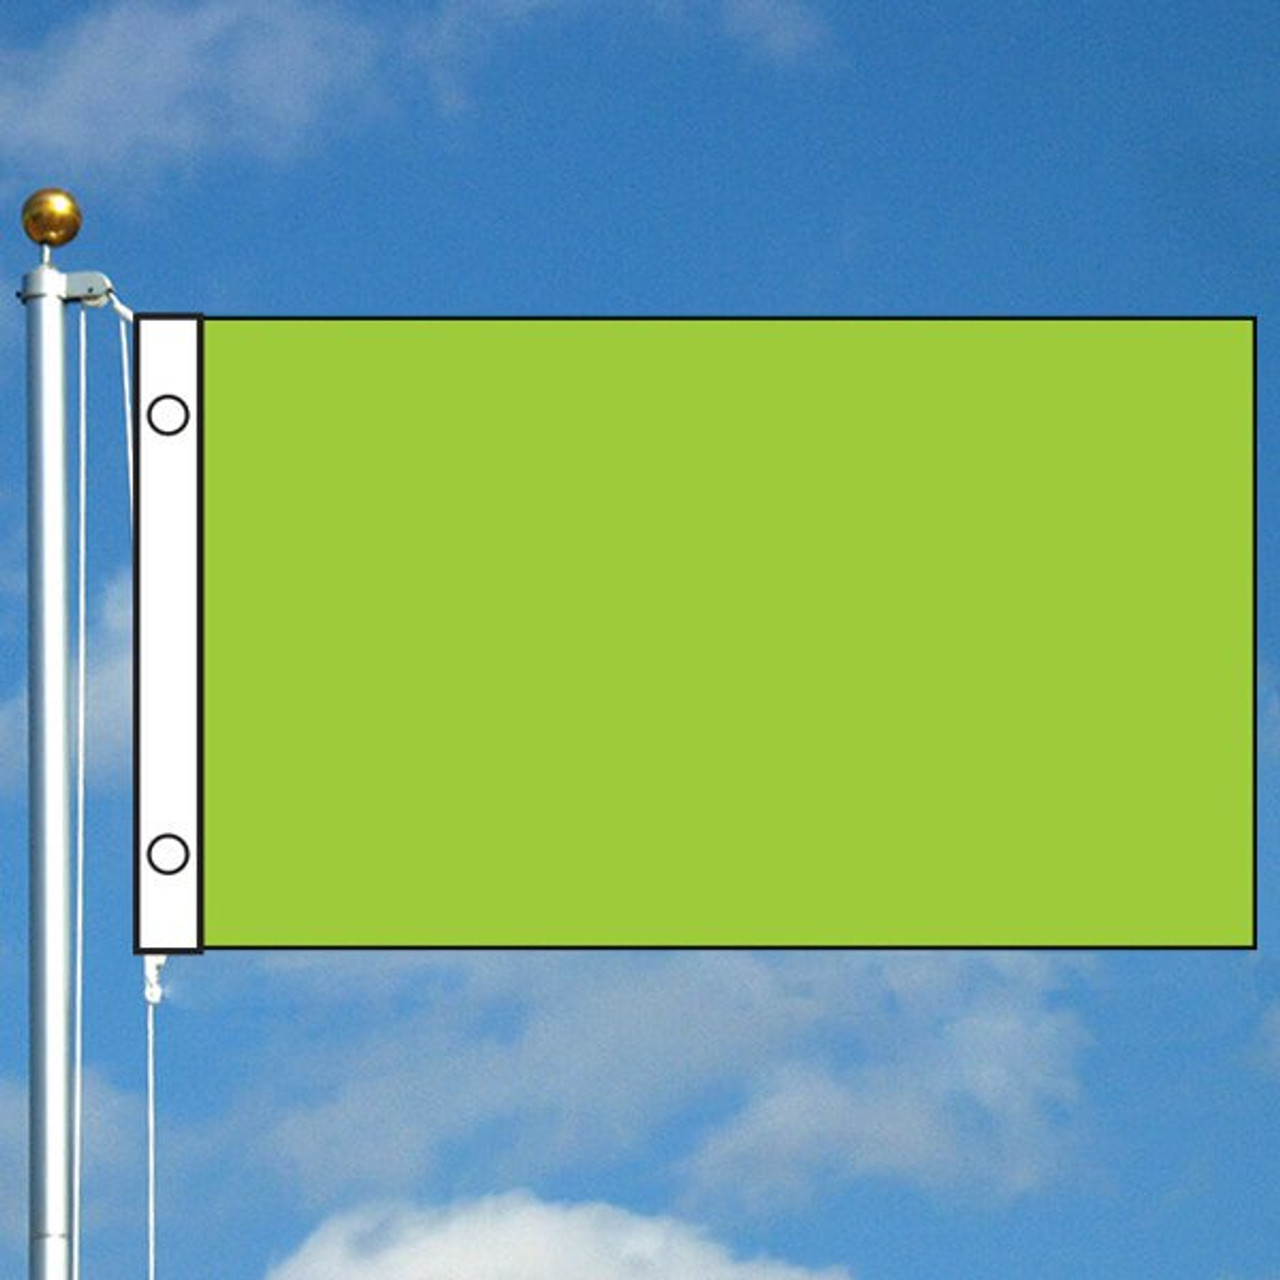 3' x 5' Solid Color Flag - Neon Green